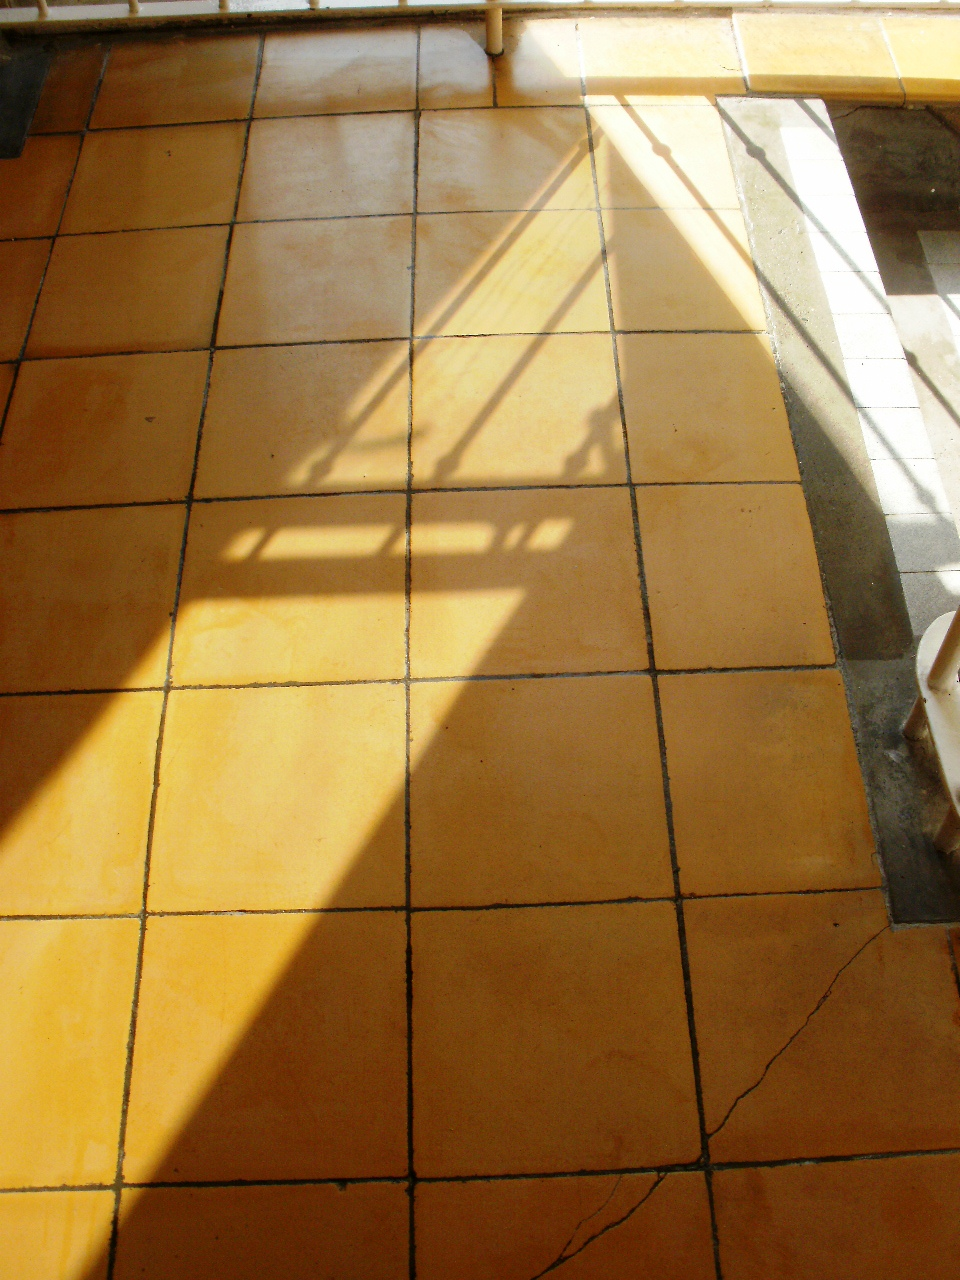 Yellow Ceramic Tiles After Cleaning in Poole